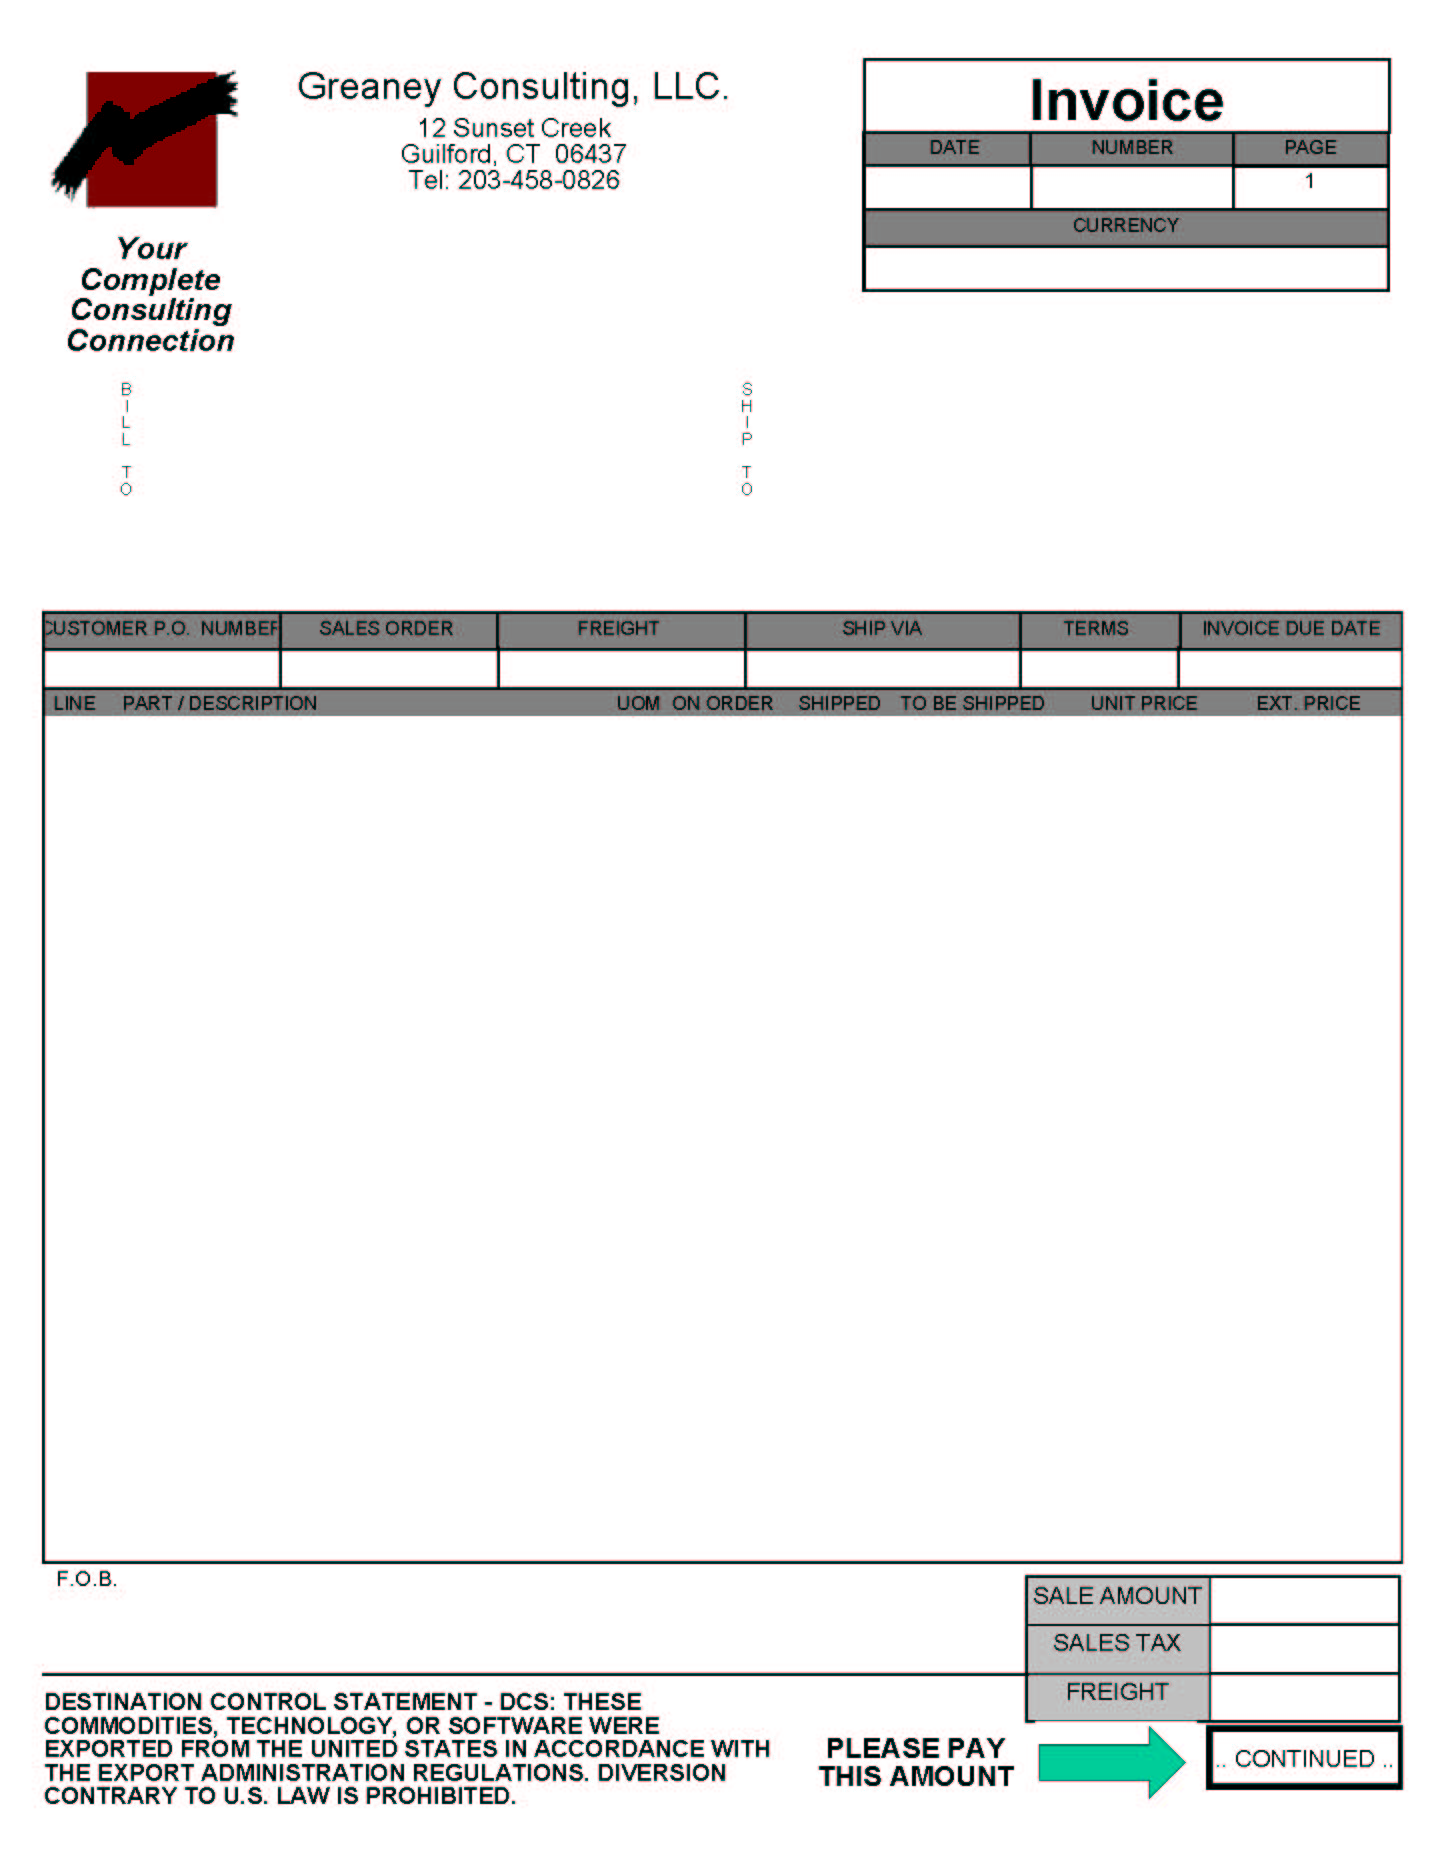 proforma invoice construction best online resume builder proforma invoice construction export invoice forms shipping solutions printable invoice form template example invoice